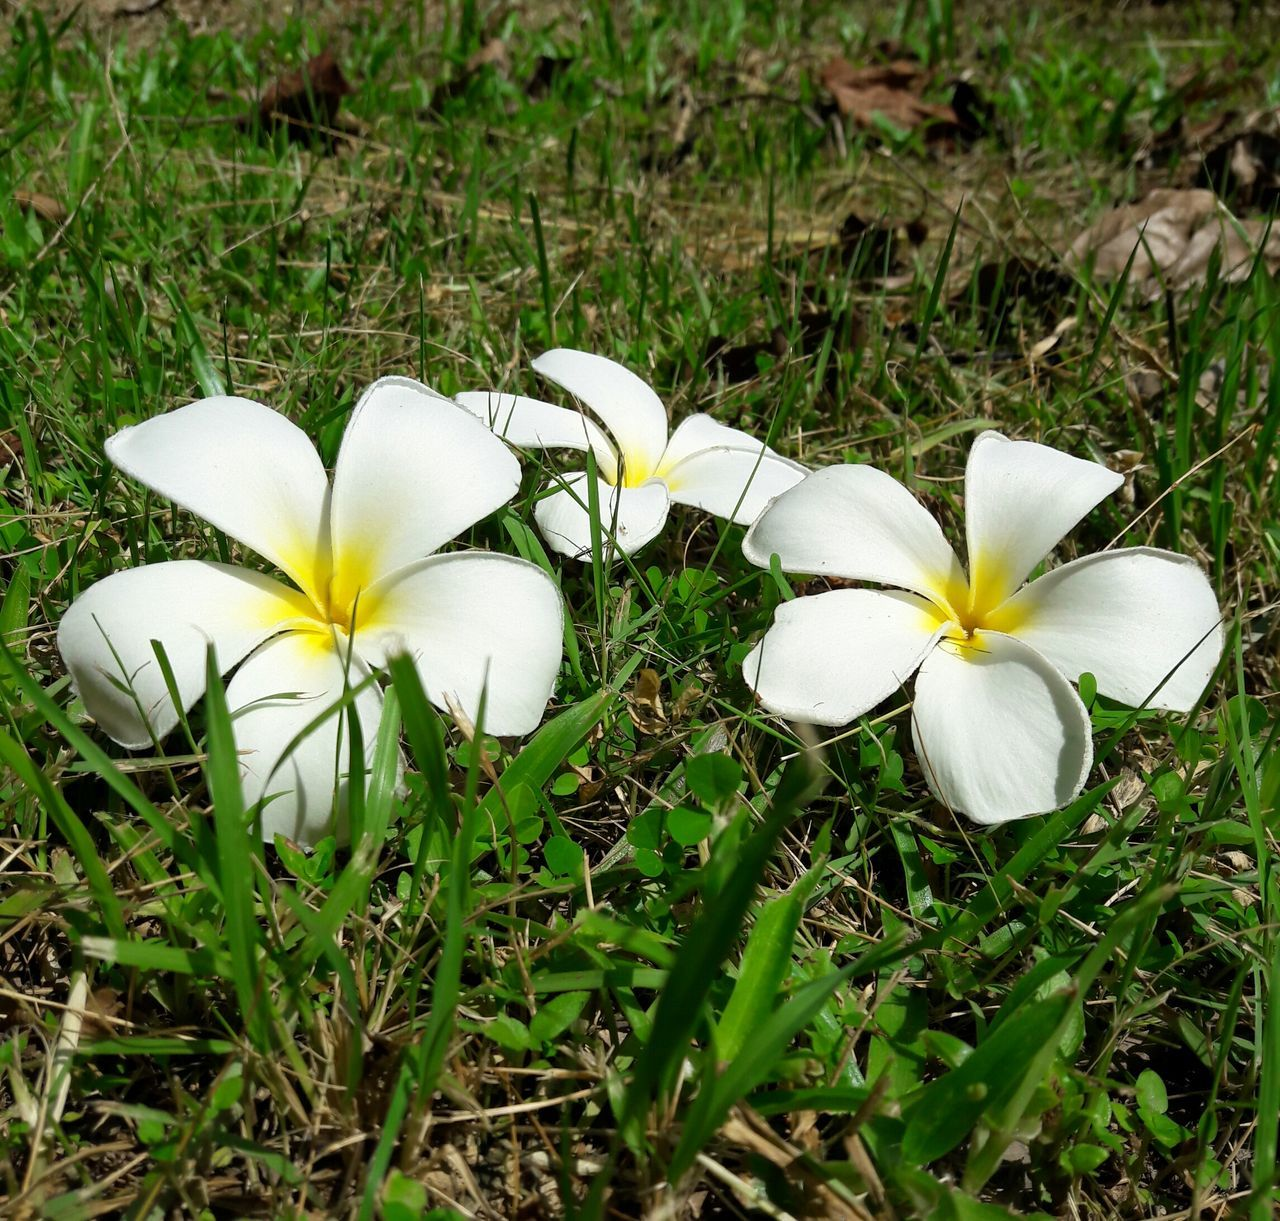 flower, white color, petal, beauty in nature, fragility, growth, flower head, nature, field, freshness, plant, blooming, high angle view, grass, frangipani, day, outdoors, no people, close-up, snowdrop, crocus